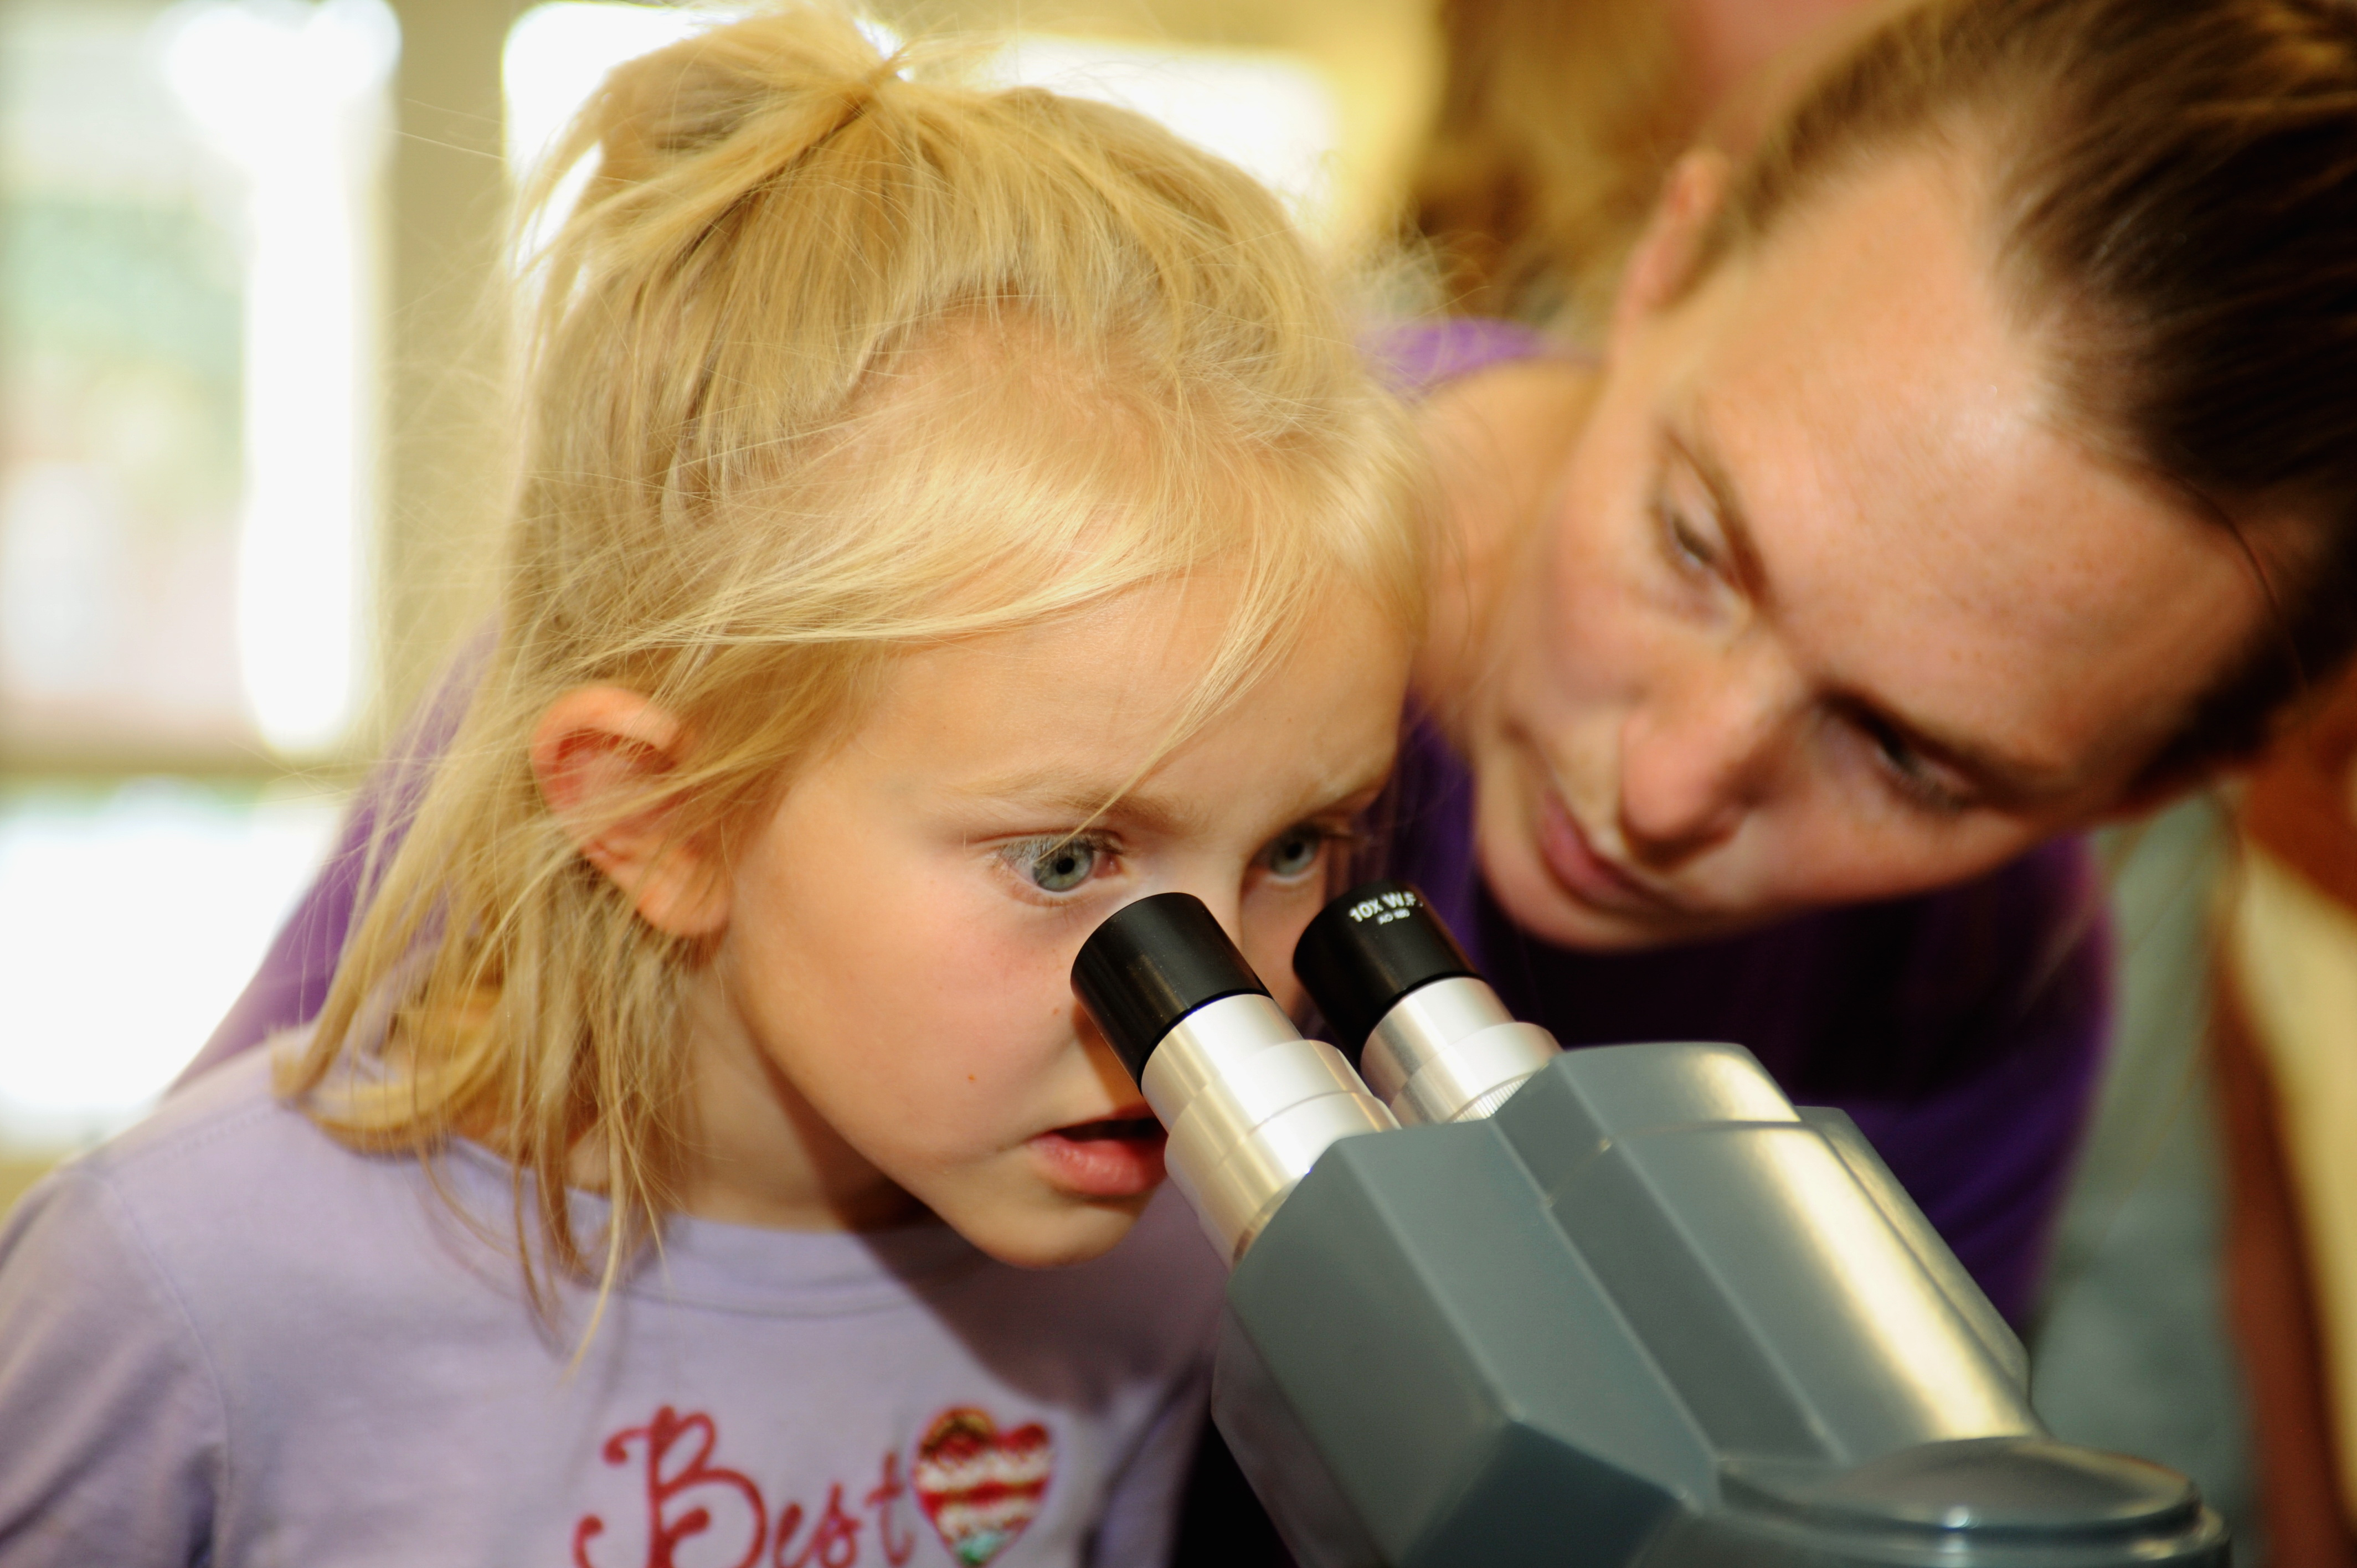 Young girl peering into a microscope